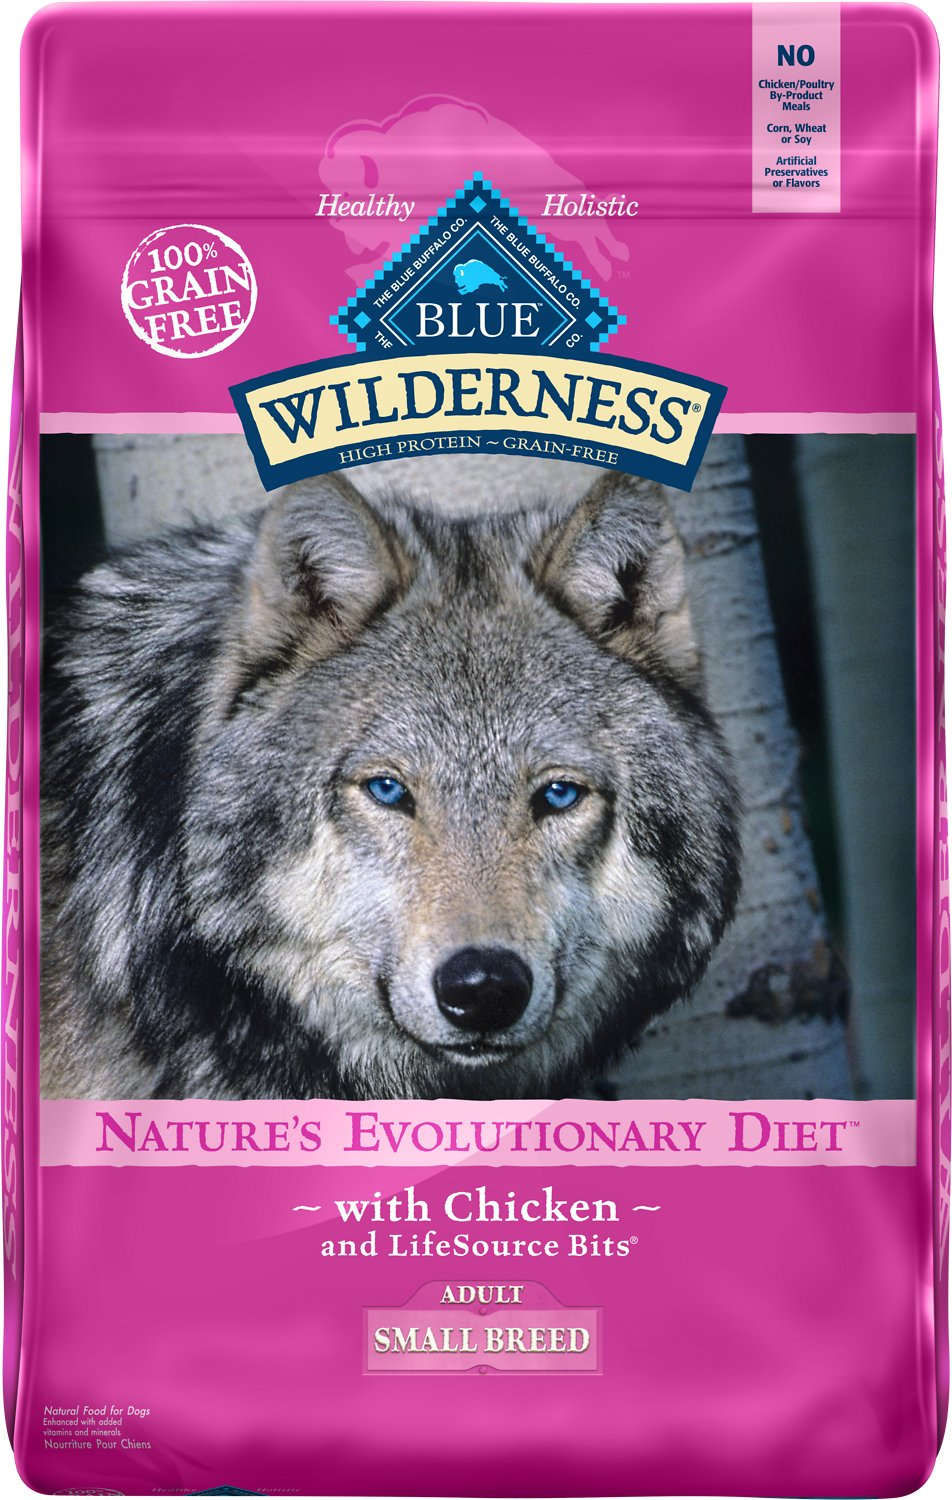 Blue Buffalo Wilderness Small Breed Chicken Recipe Grain-Free Dry Dog Food Image